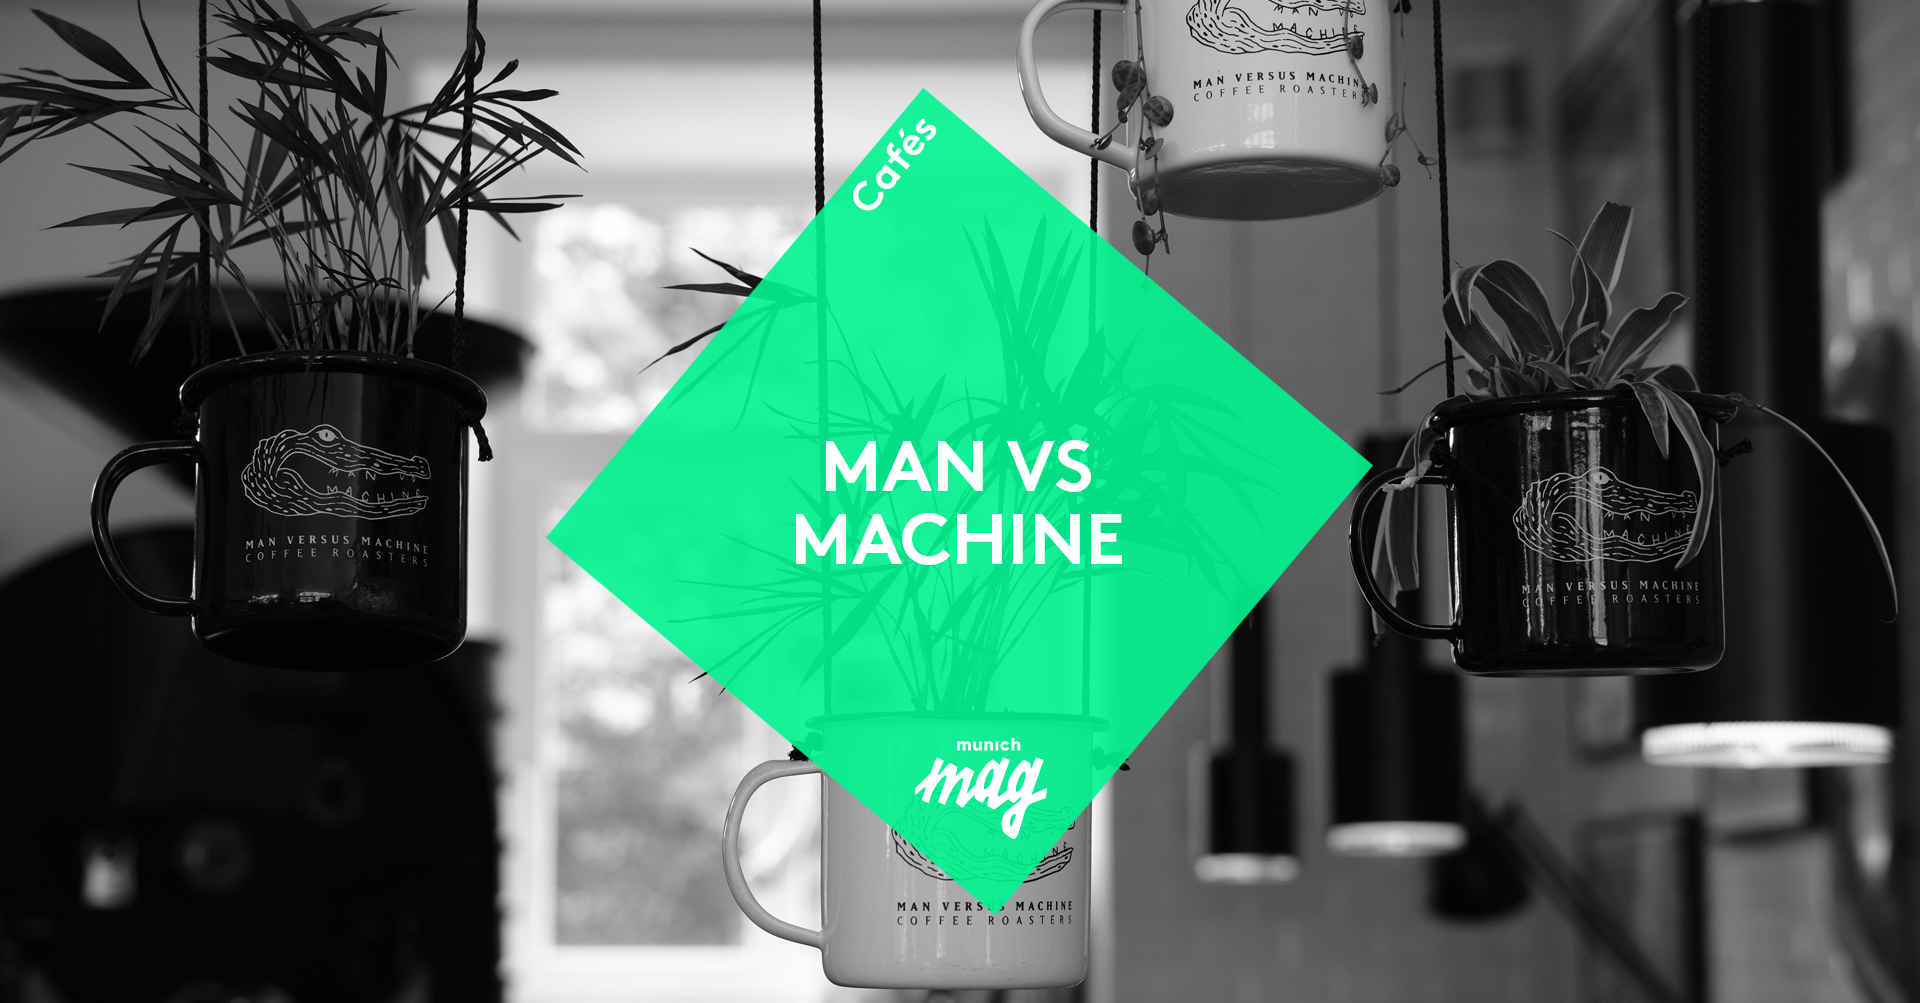 on the man vs machine financial Botman vs superagent: man vs machine in the future of customer experience  page 2 whitepaper   botman vs  manage our financial affairs unsupervised.